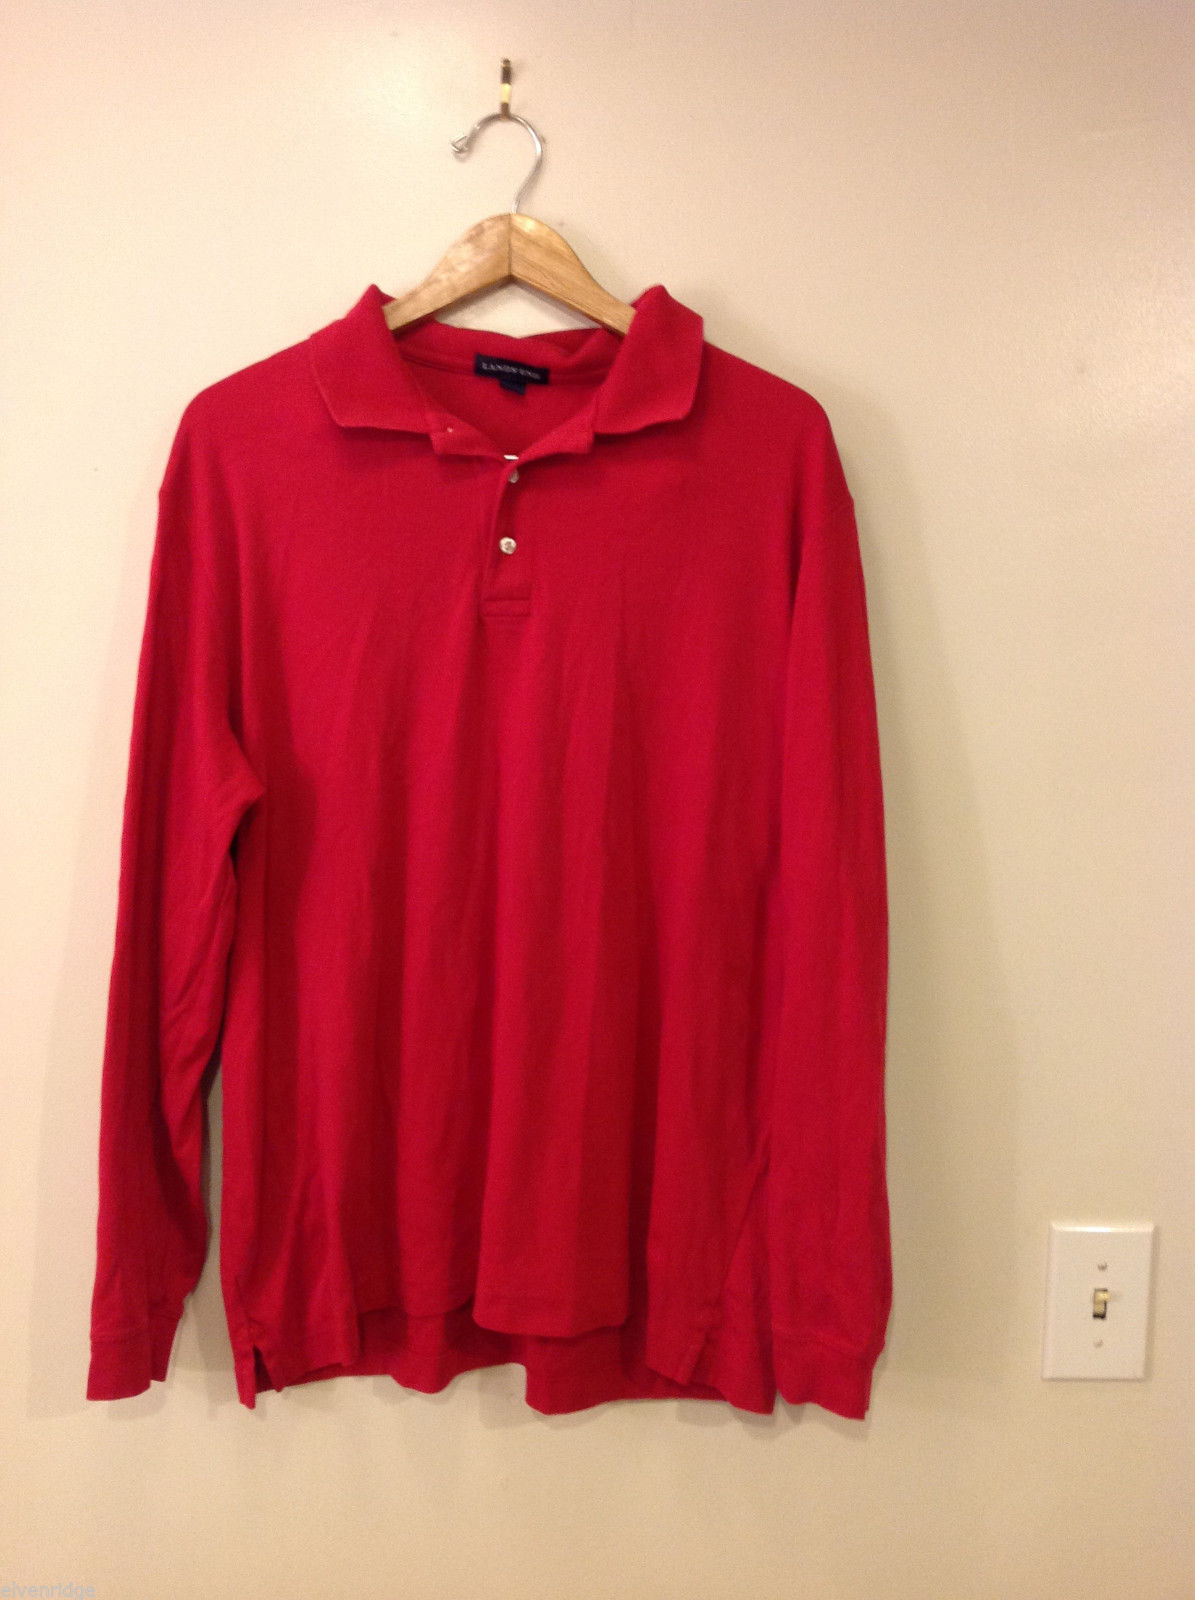 Lands' End Mens' Large XL True Red 100% Baumwolle Cotton Long-Sleeved Polo Shirt